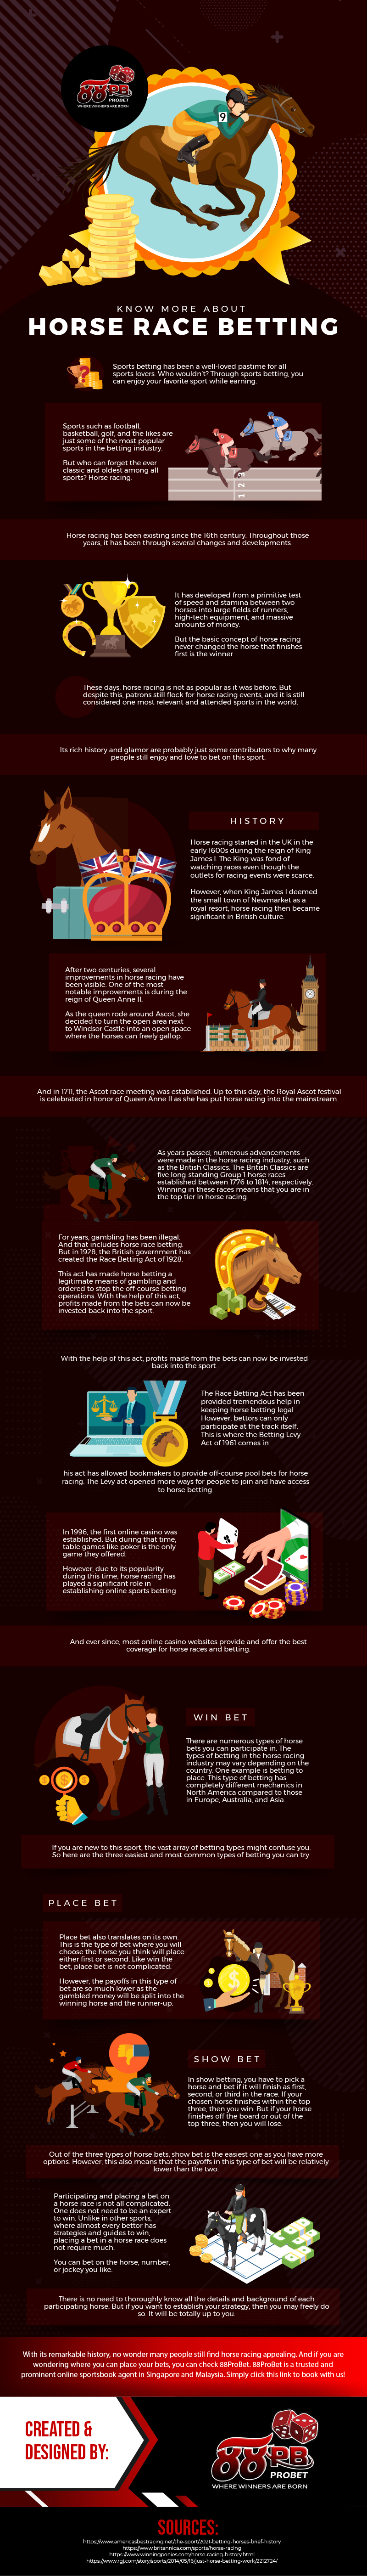 Know-More-About-Horse-Race-Betting